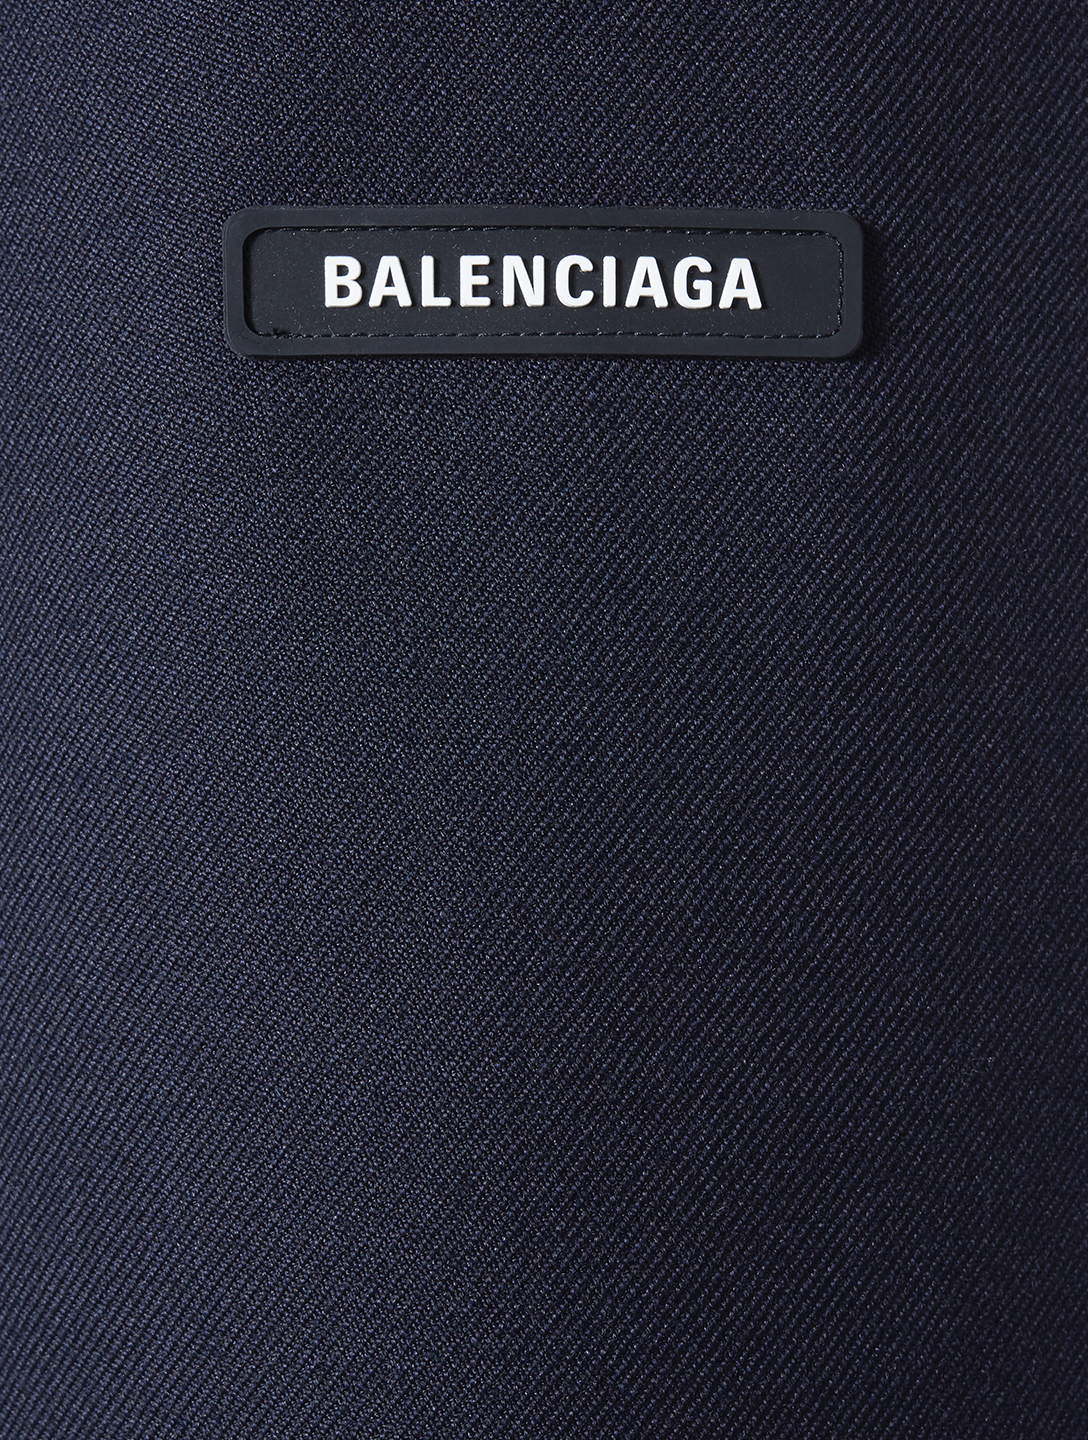 BALENCIAGA Wool Military Coat Men's Blue